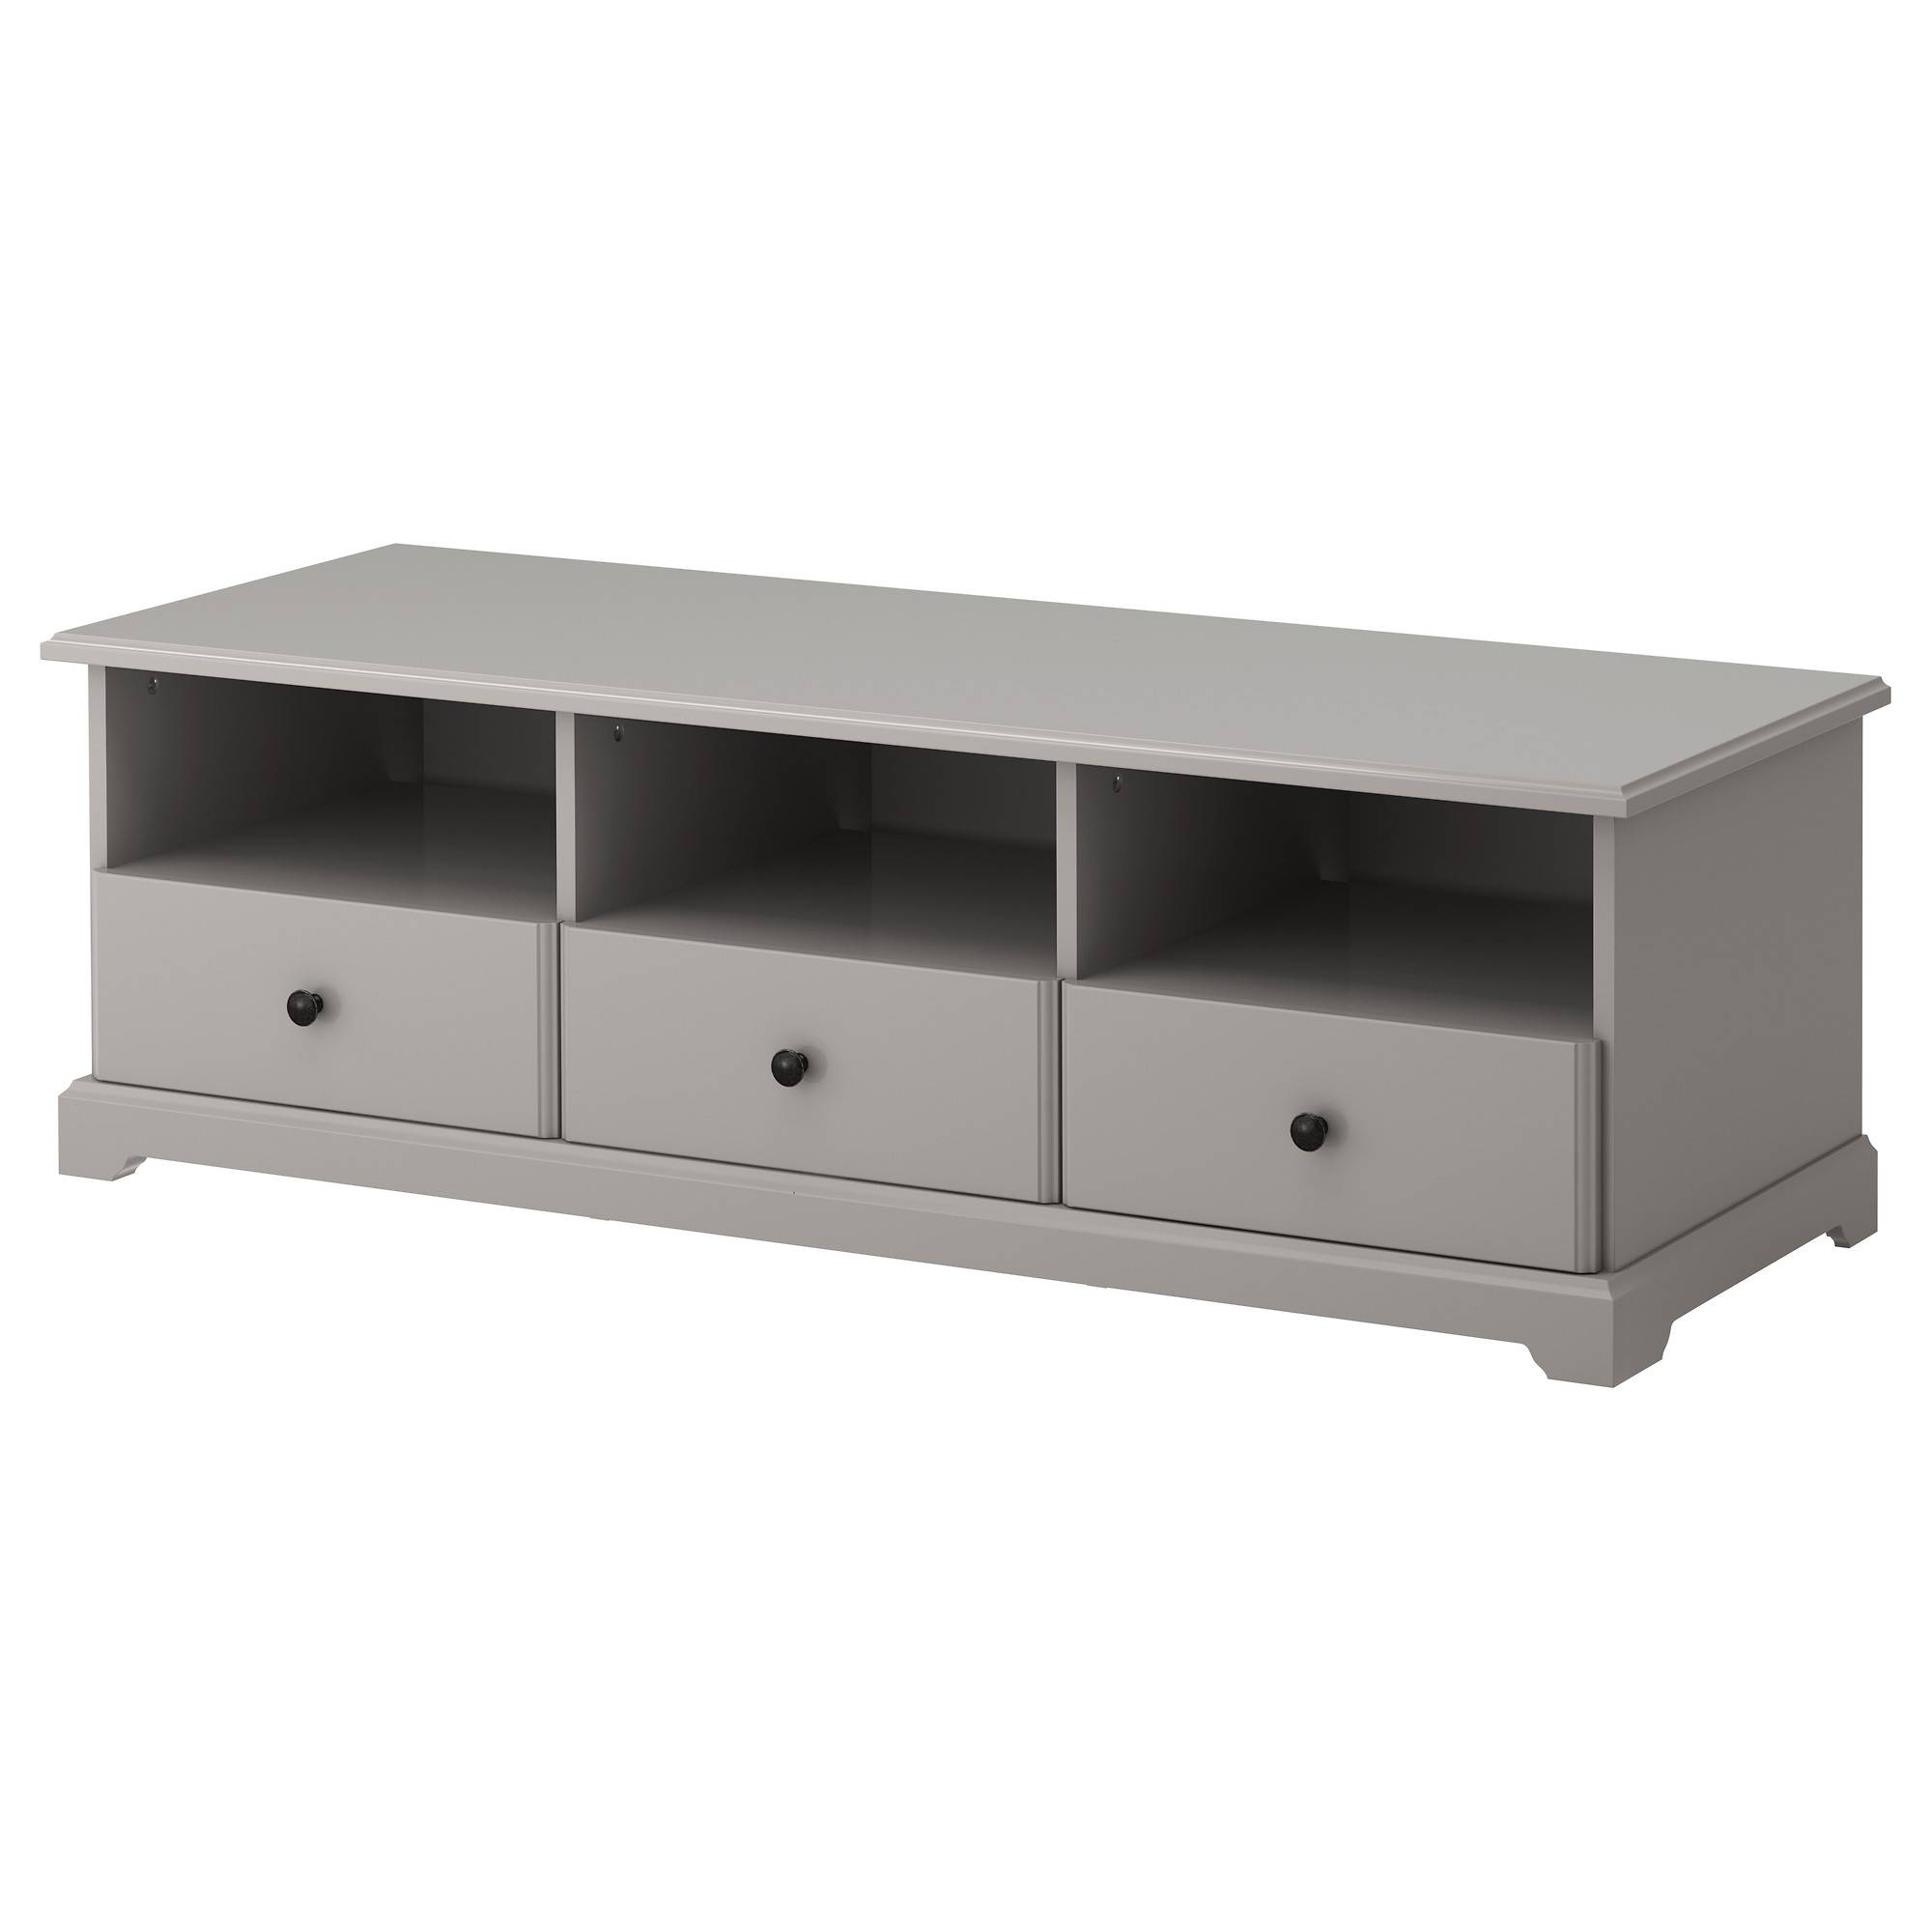 Tv Media Furniture – Tv Stands, Cabinets & Media Storage - Ikea regarding Bench Tv Stands (Image 13 of 15)